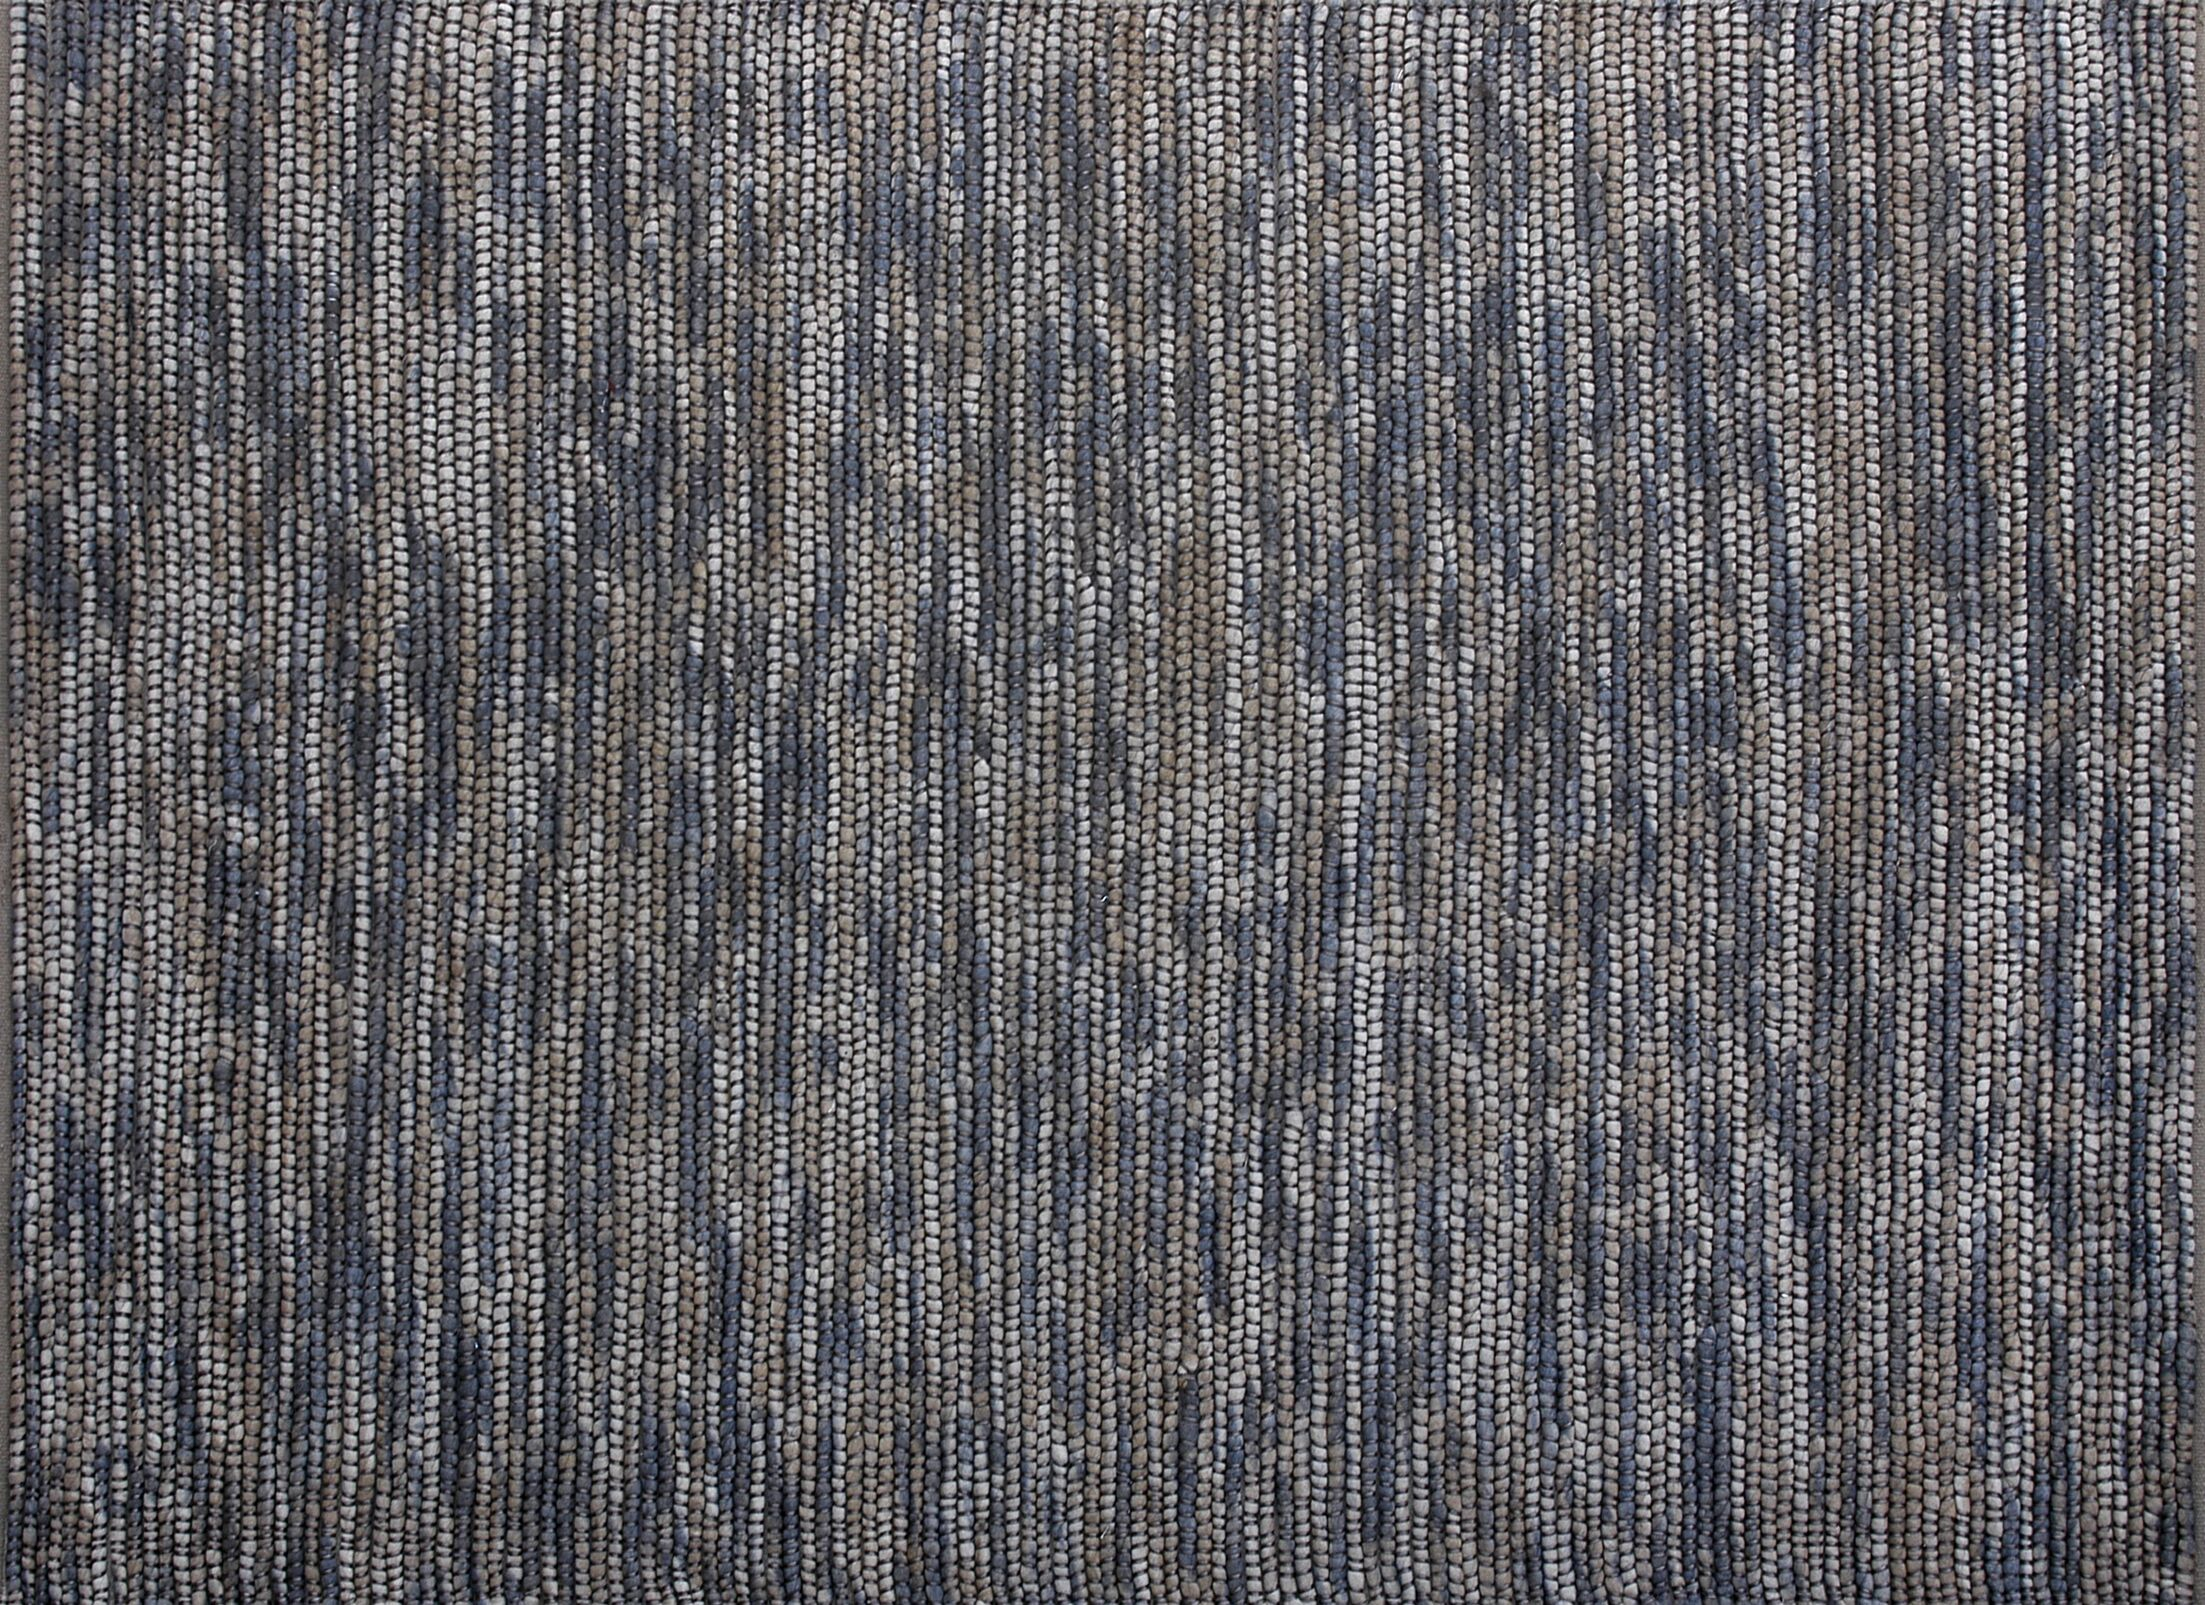 Kehl Hand-Woven Blue/Gray Area Rug Rug Size: Rectangle 5' x 7'6